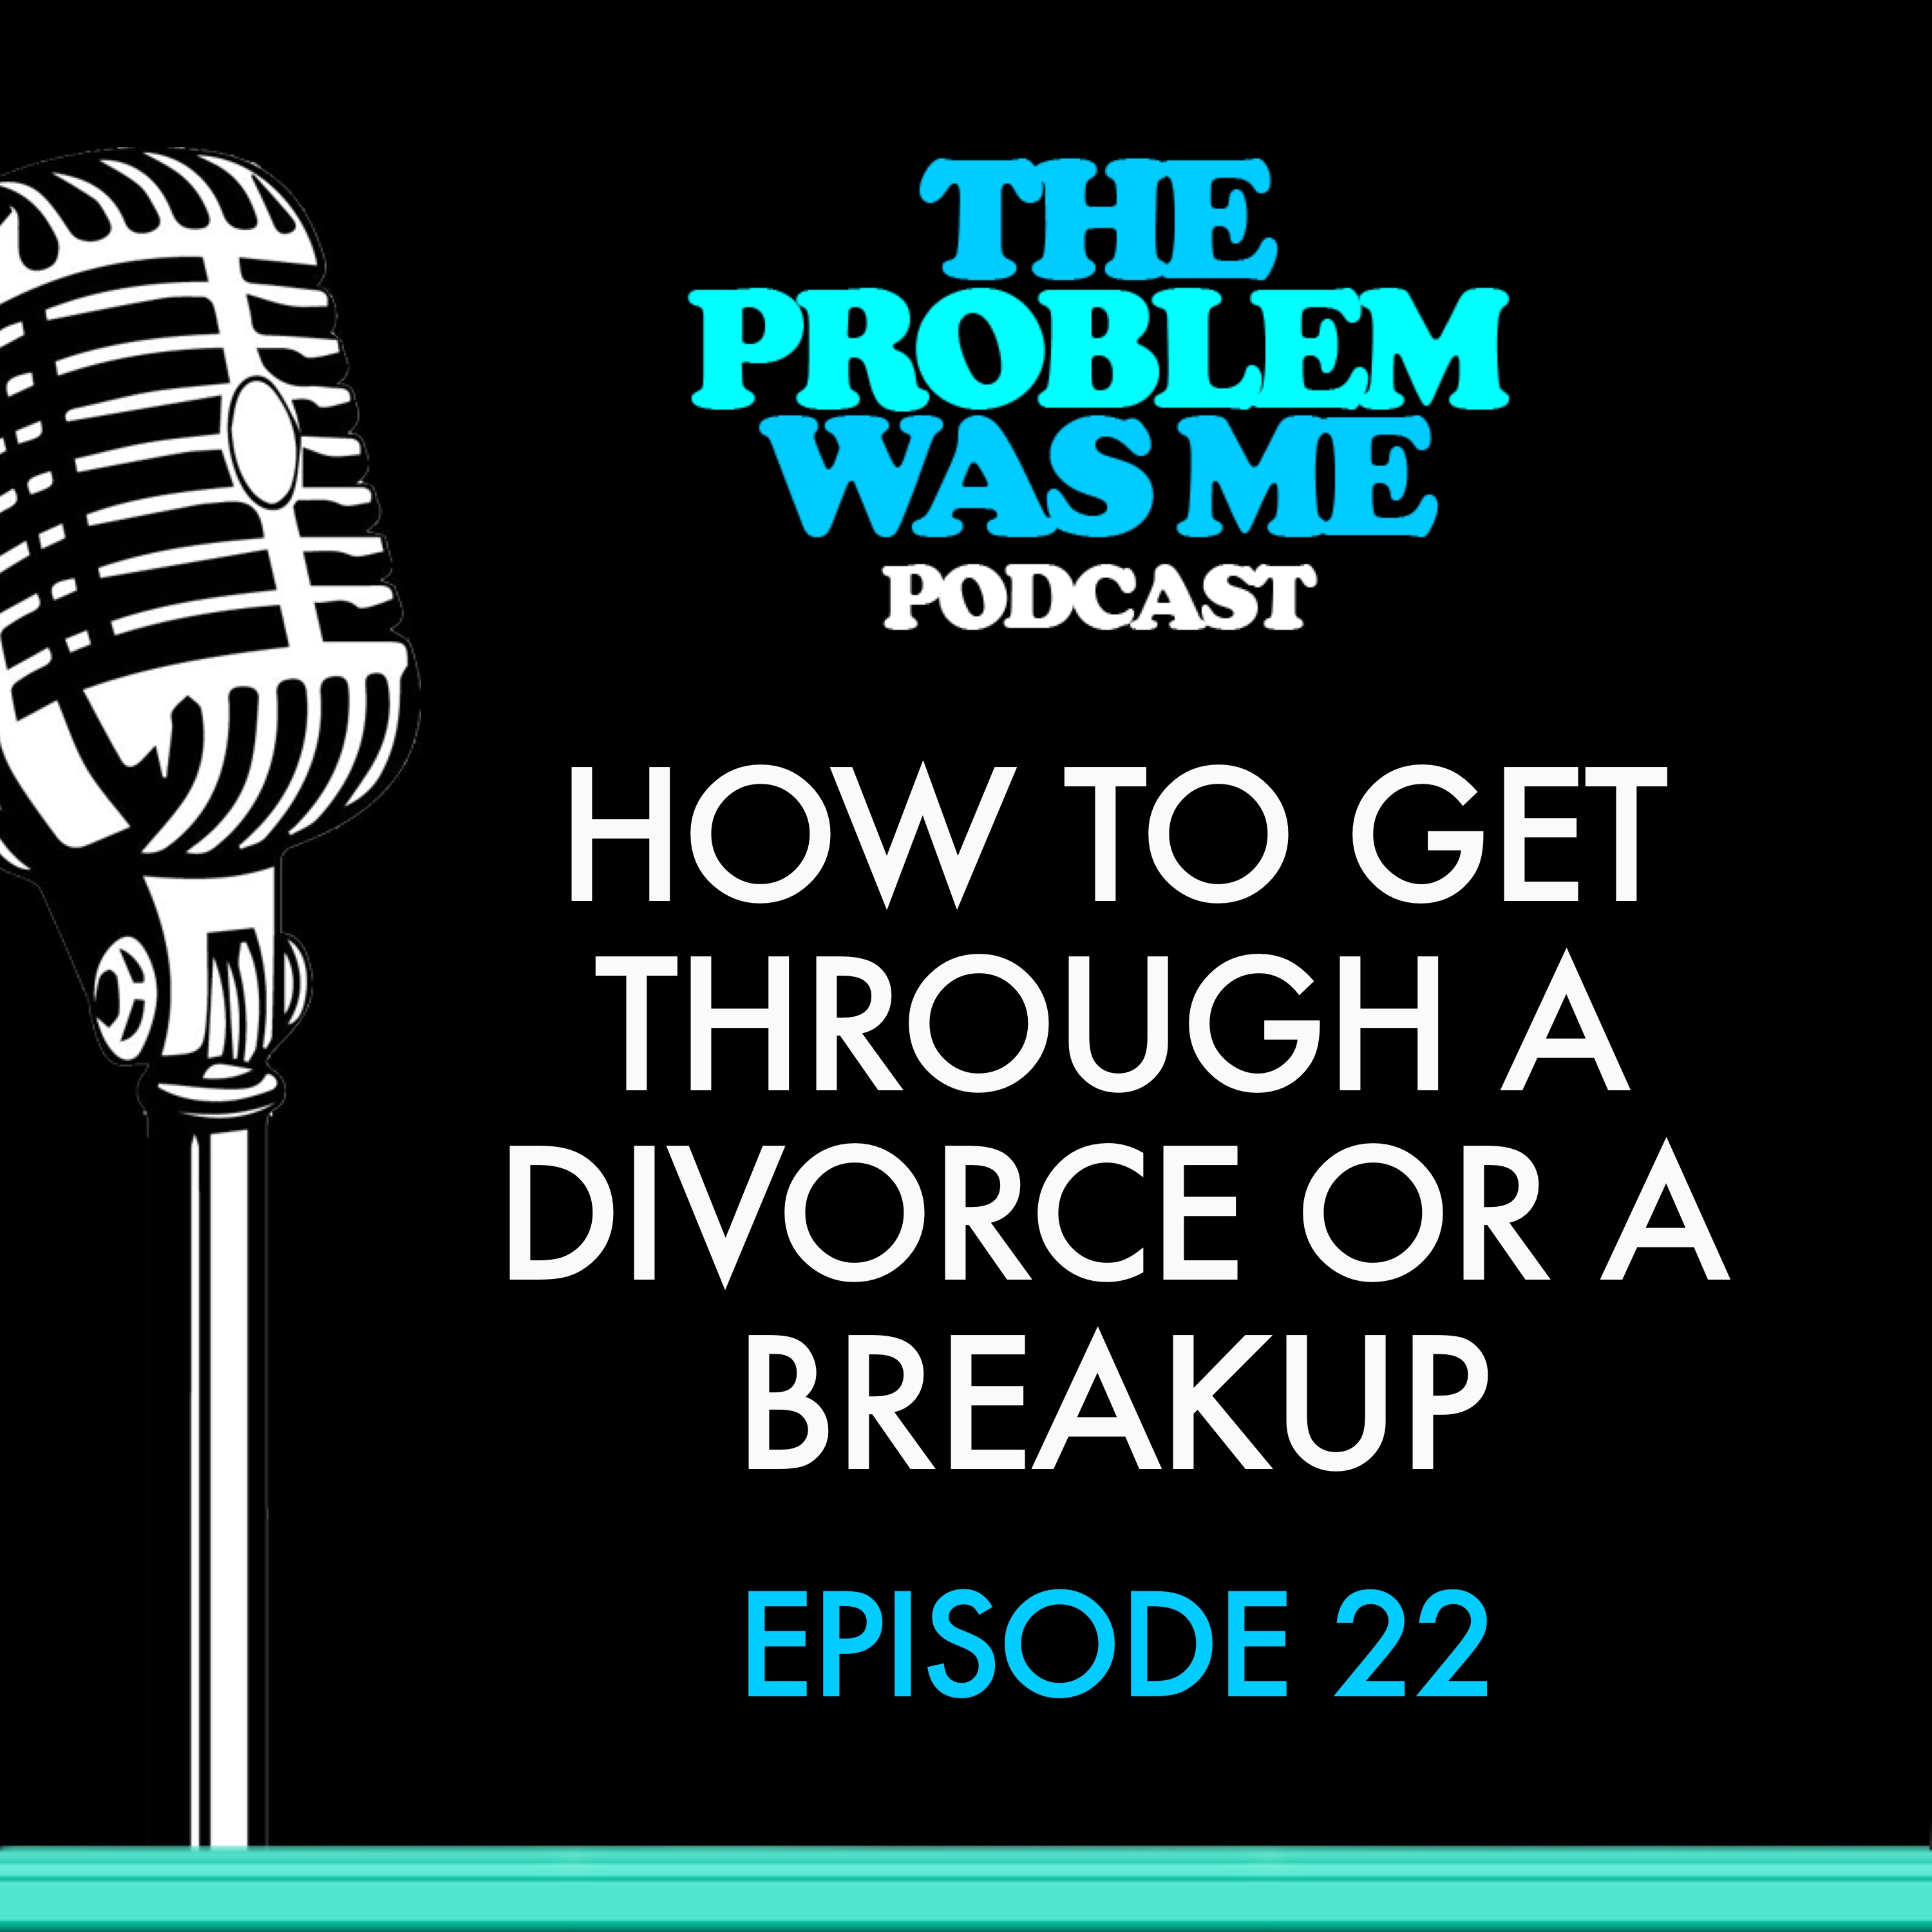 How to Get Through a Divorce or a Breakup